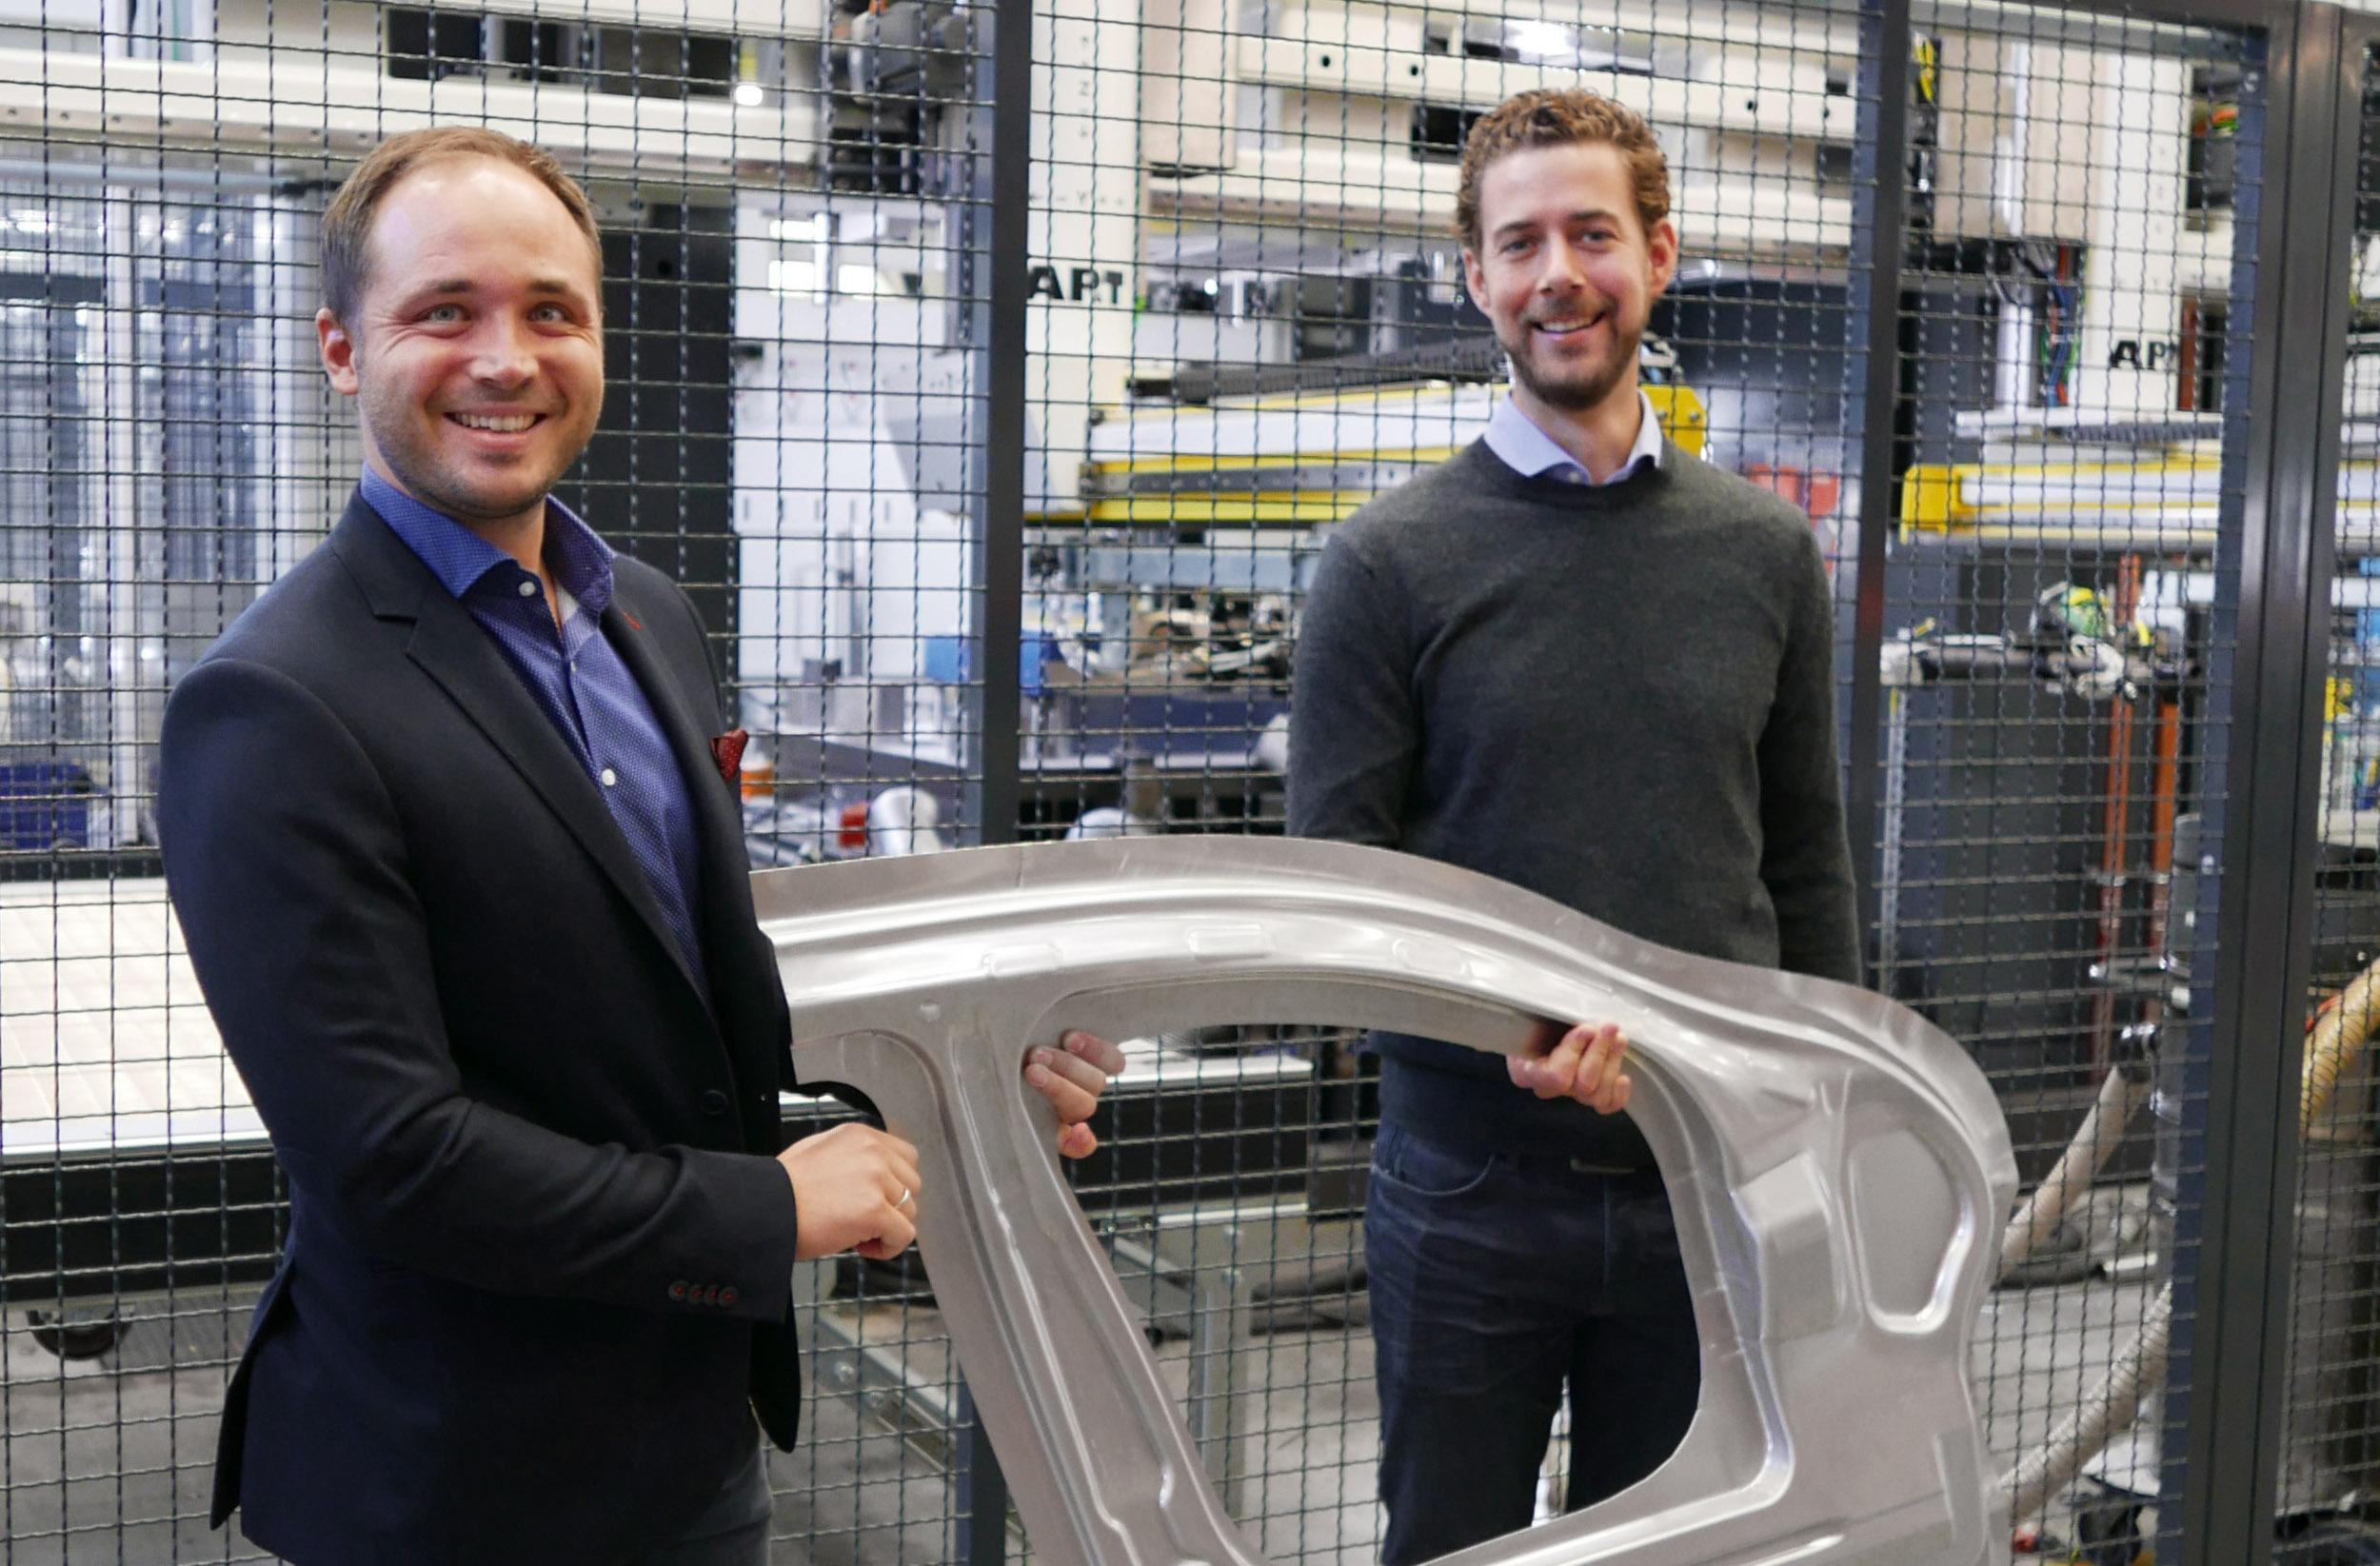 AP&T's Chief Technology Officer, Dr. Christian Koroschetz and Manager Development Forming Processes & Tooling, Dr. Michael Machhammer proudly display the complex-shaped door ring component, exhibiting the typical door inner design elements.